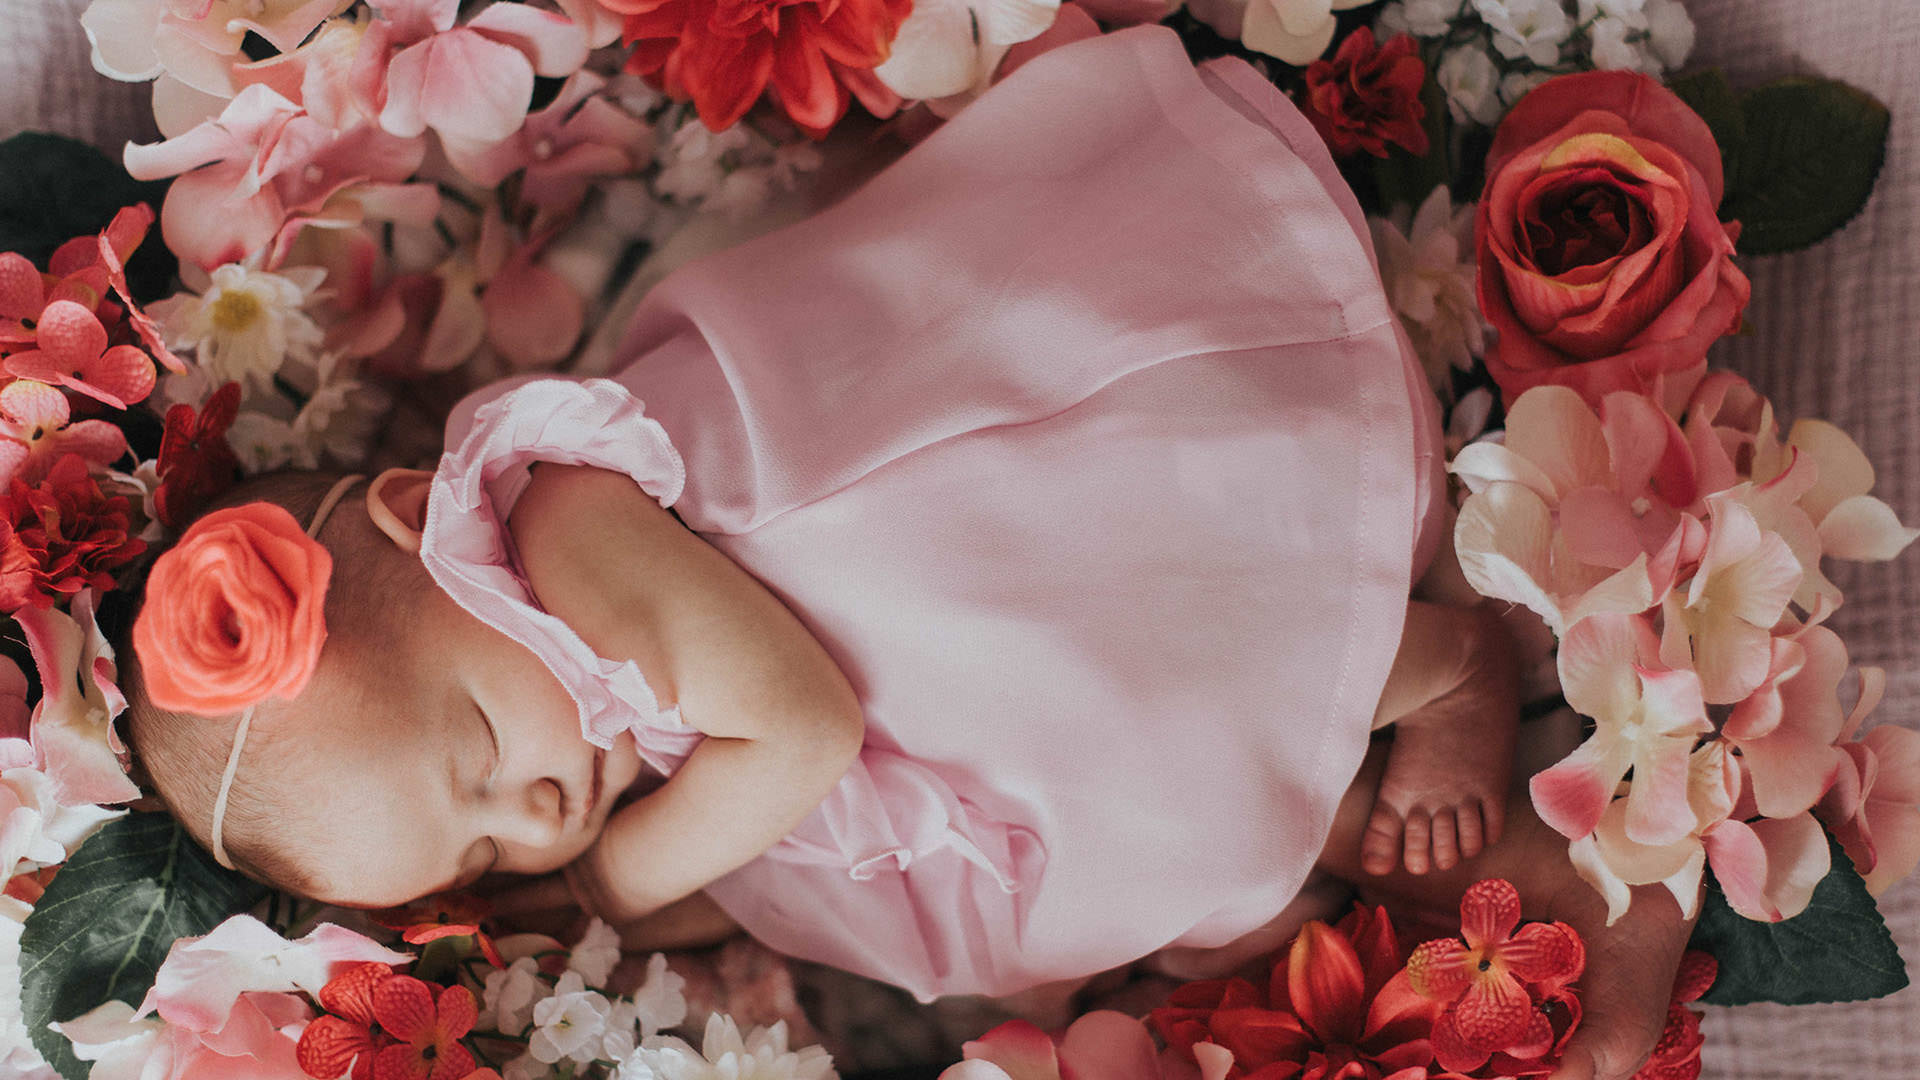 Baby lying in a bed of flowers during a newborn photography session in Greenville,SC.